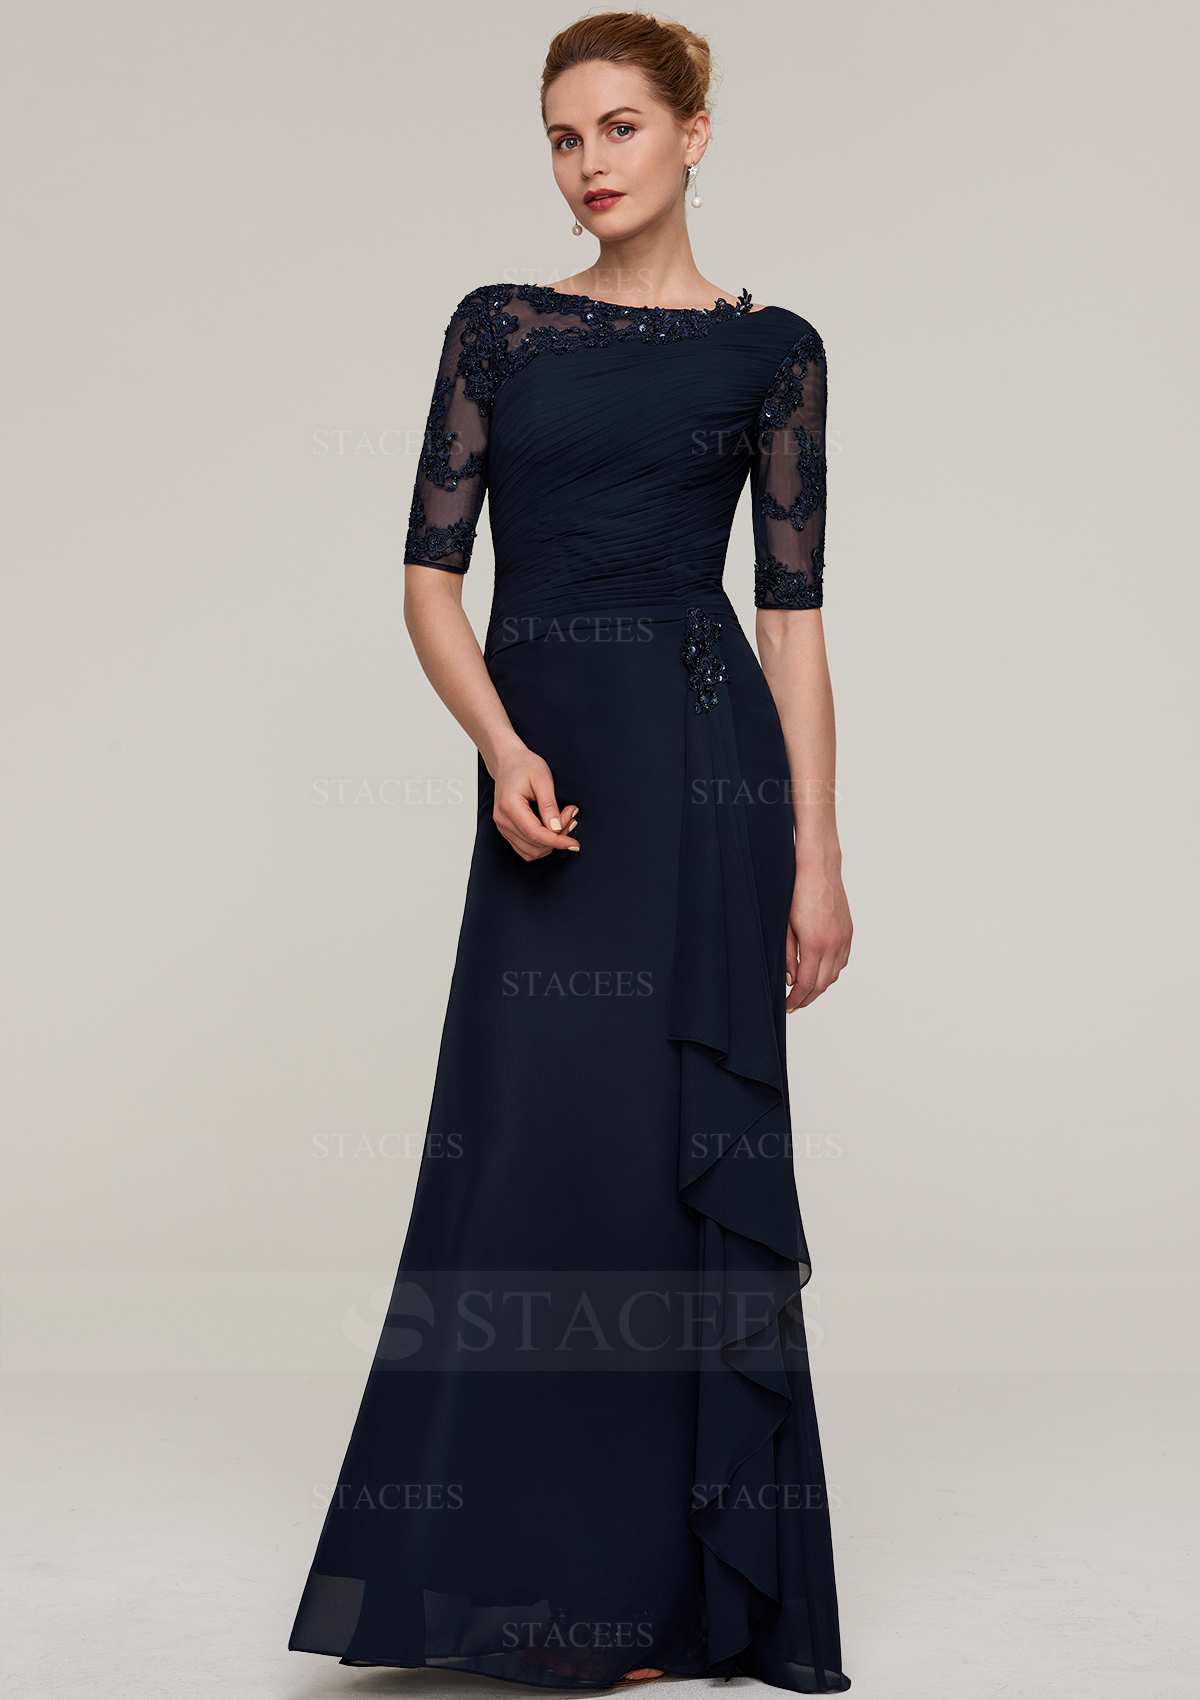 03f8bccdc7 Sheath Column Bateau Half Sleeve Long Floor-Length Chiffon Mother of ...